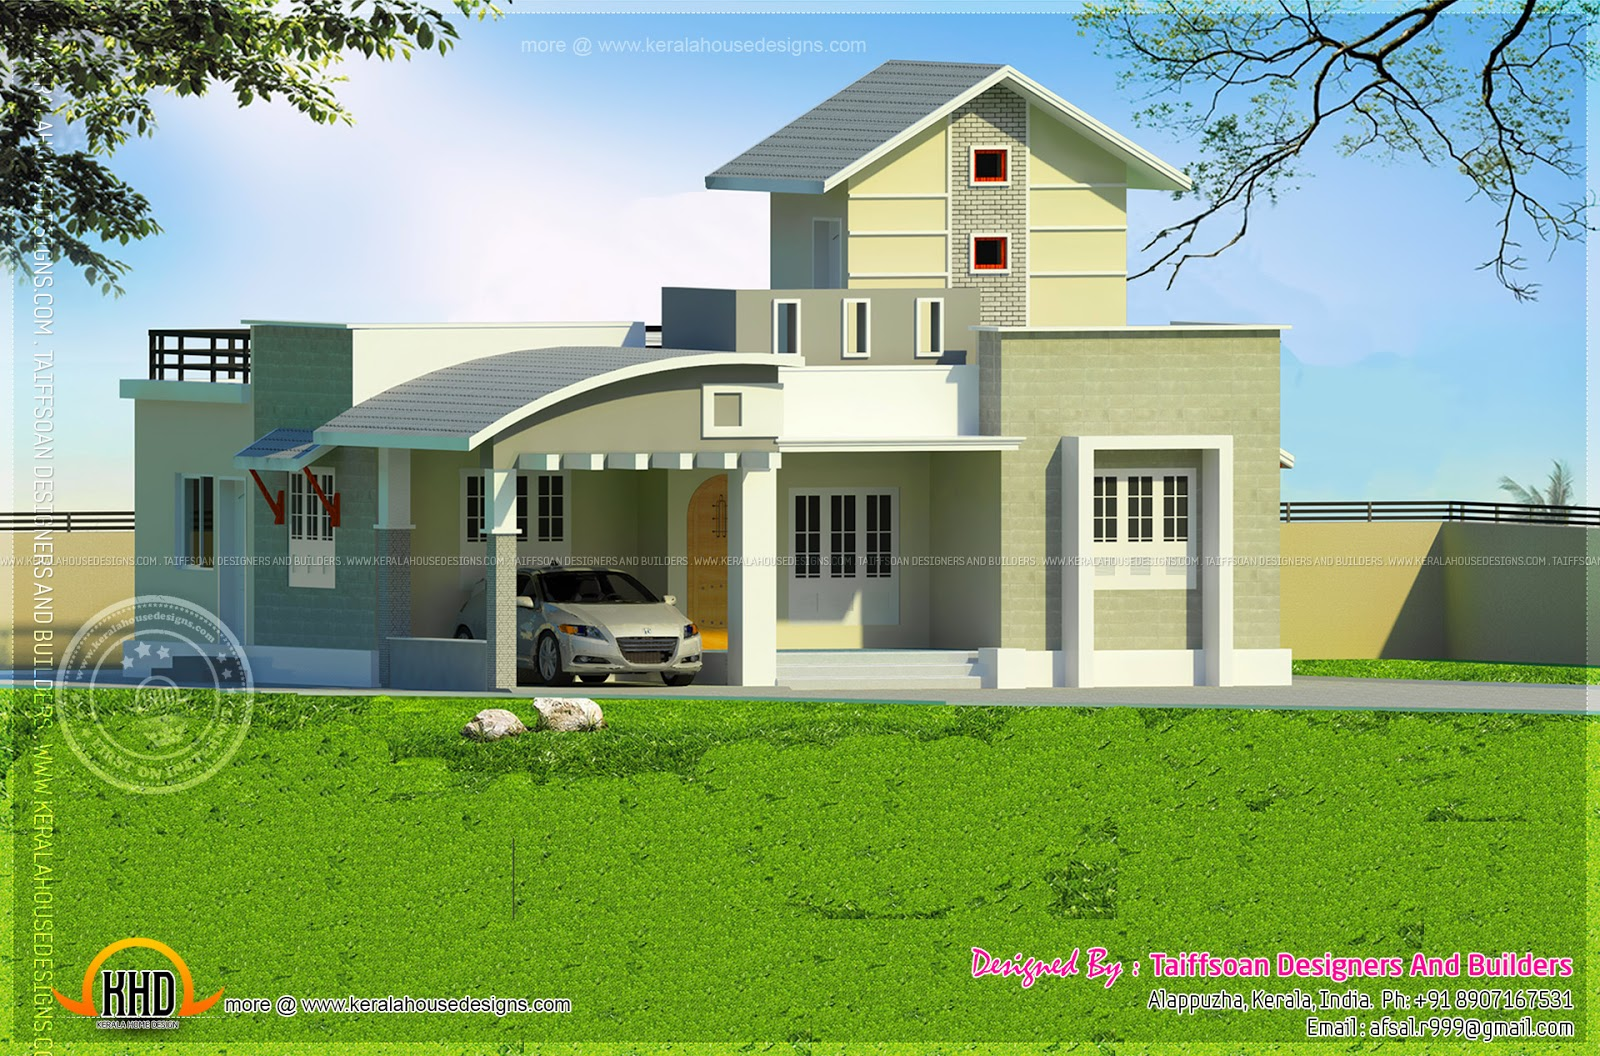 bedroom single storied house kerala home design and floor plans - Single Floor House Plans